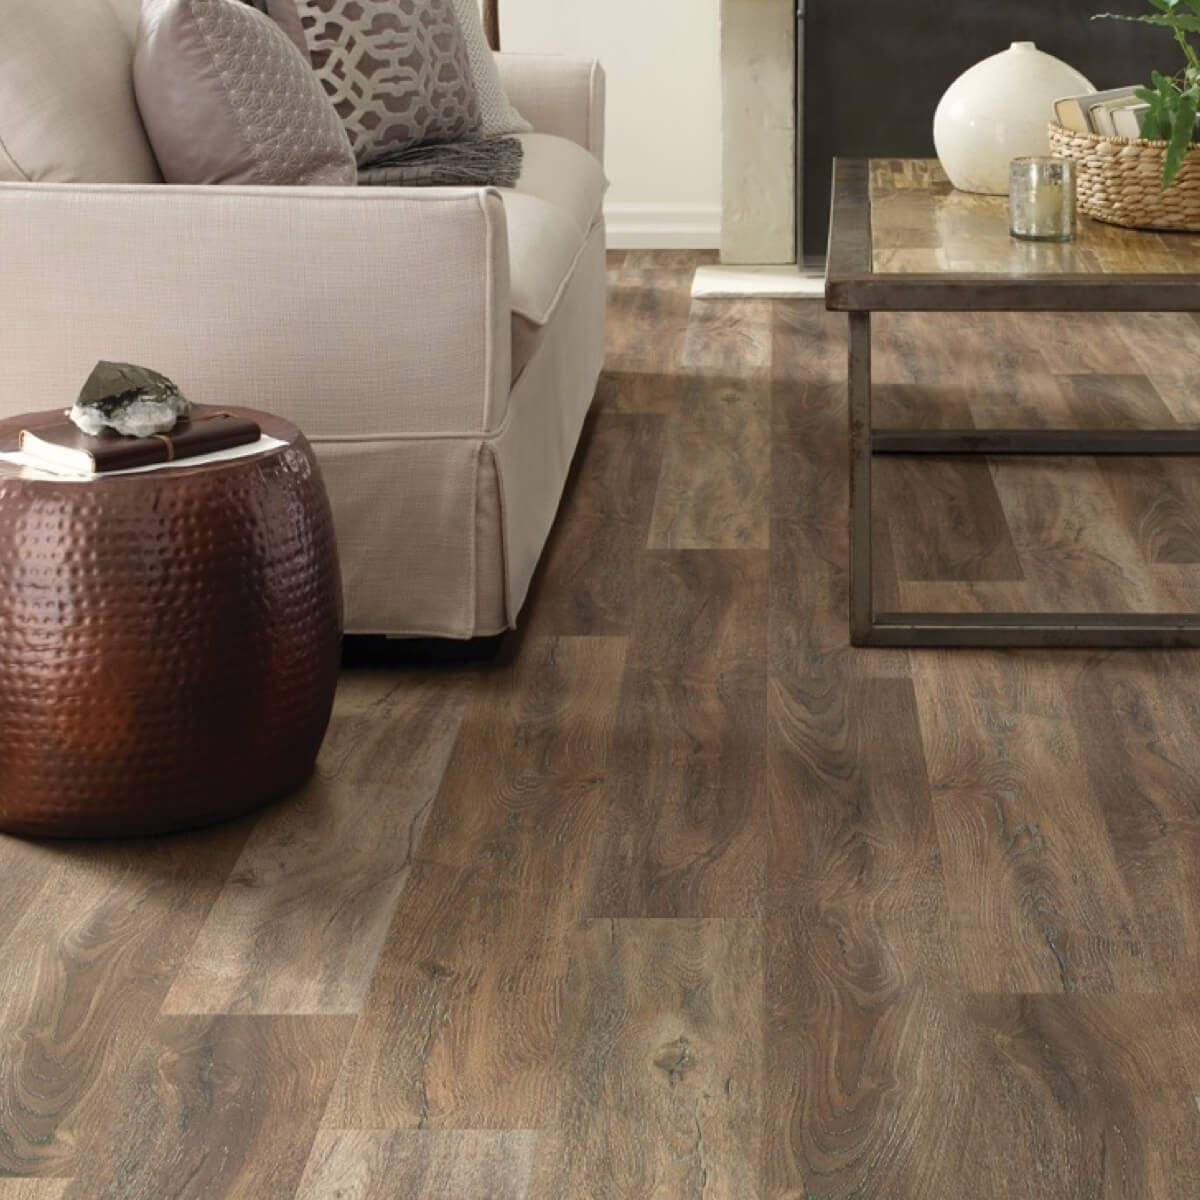 Vinyl flooring | Markville Carpet & Flooring